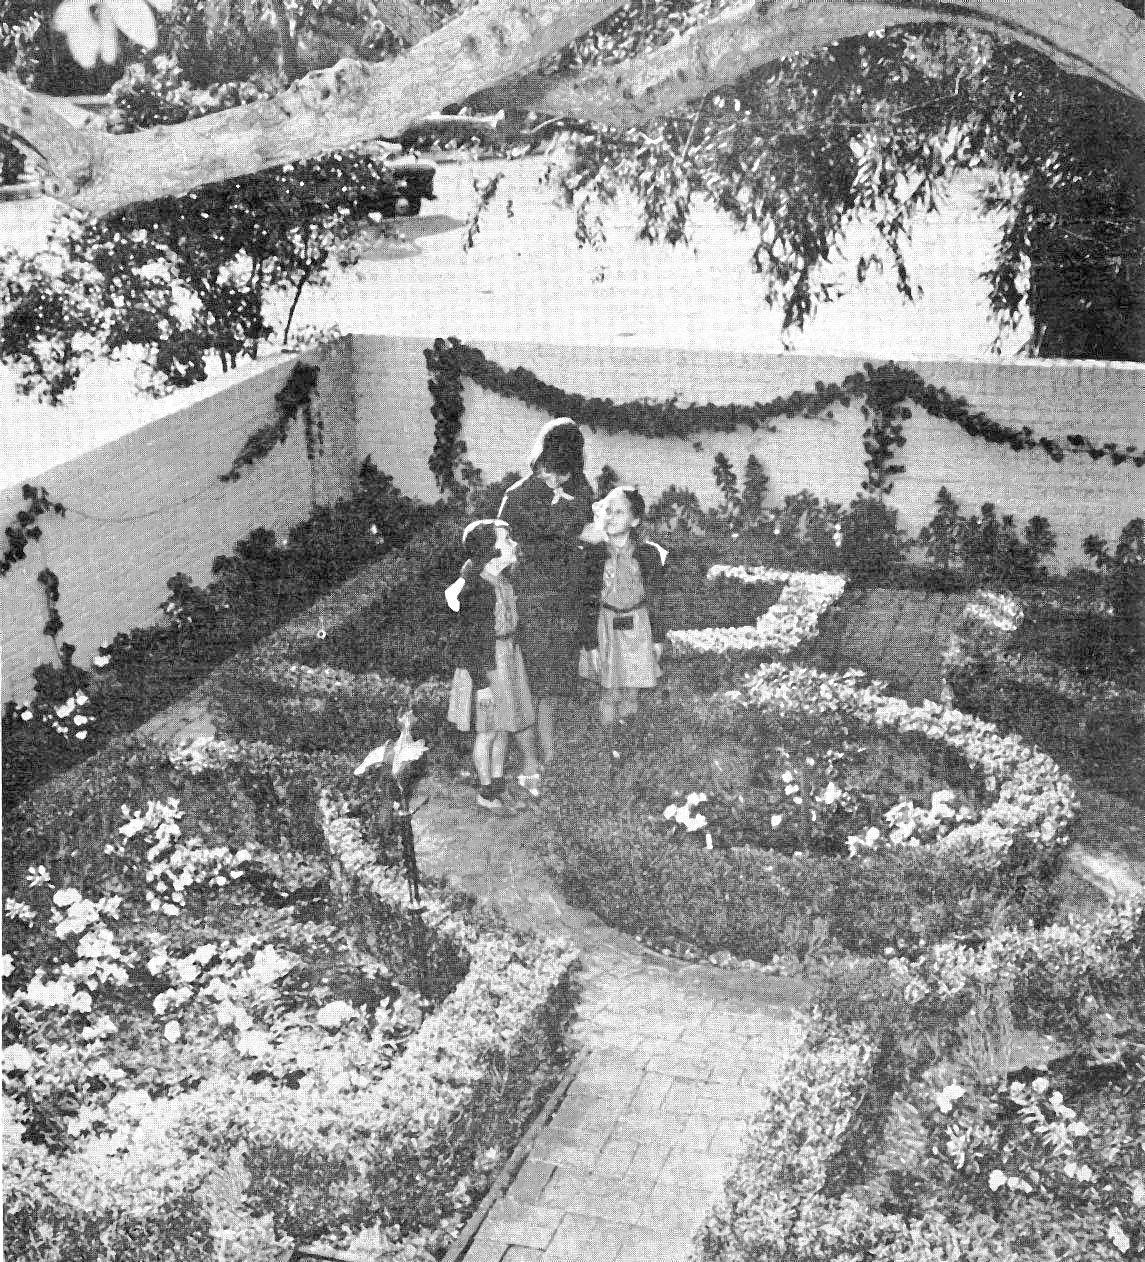 The garden at 384 Meadow Grove Drive in the Flintridge area was included in the 31st annual Girl Scout Garden Tours, a fundraiser for the Pasadena Area Girl Scout Council that was held over a few weekends in the late winter/early spring of 1964. Brownie Scouts Luann Lovejoy and Kathy Wood are shown standing in the garden on Meadow Grove with Senior Scout Marcia Kaech.